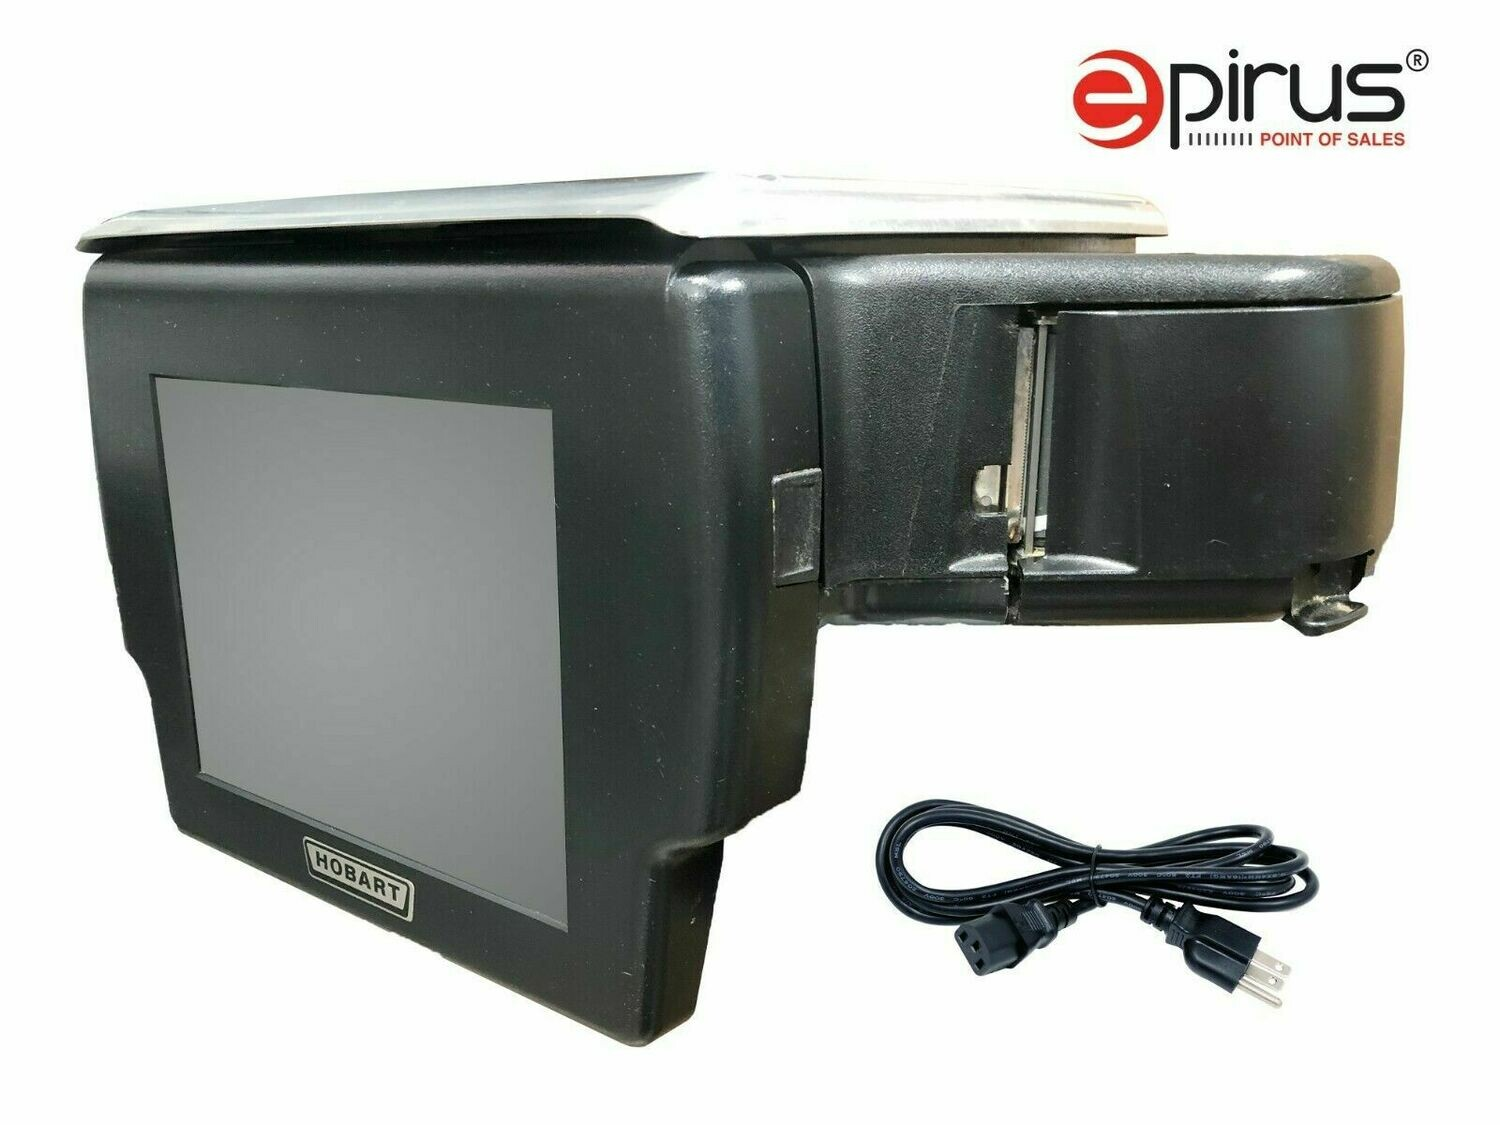 Deli Grocery Scale with Printer, Cleaned Tested Touch Screen 029289-JR Hobart (Grade A Refurb)